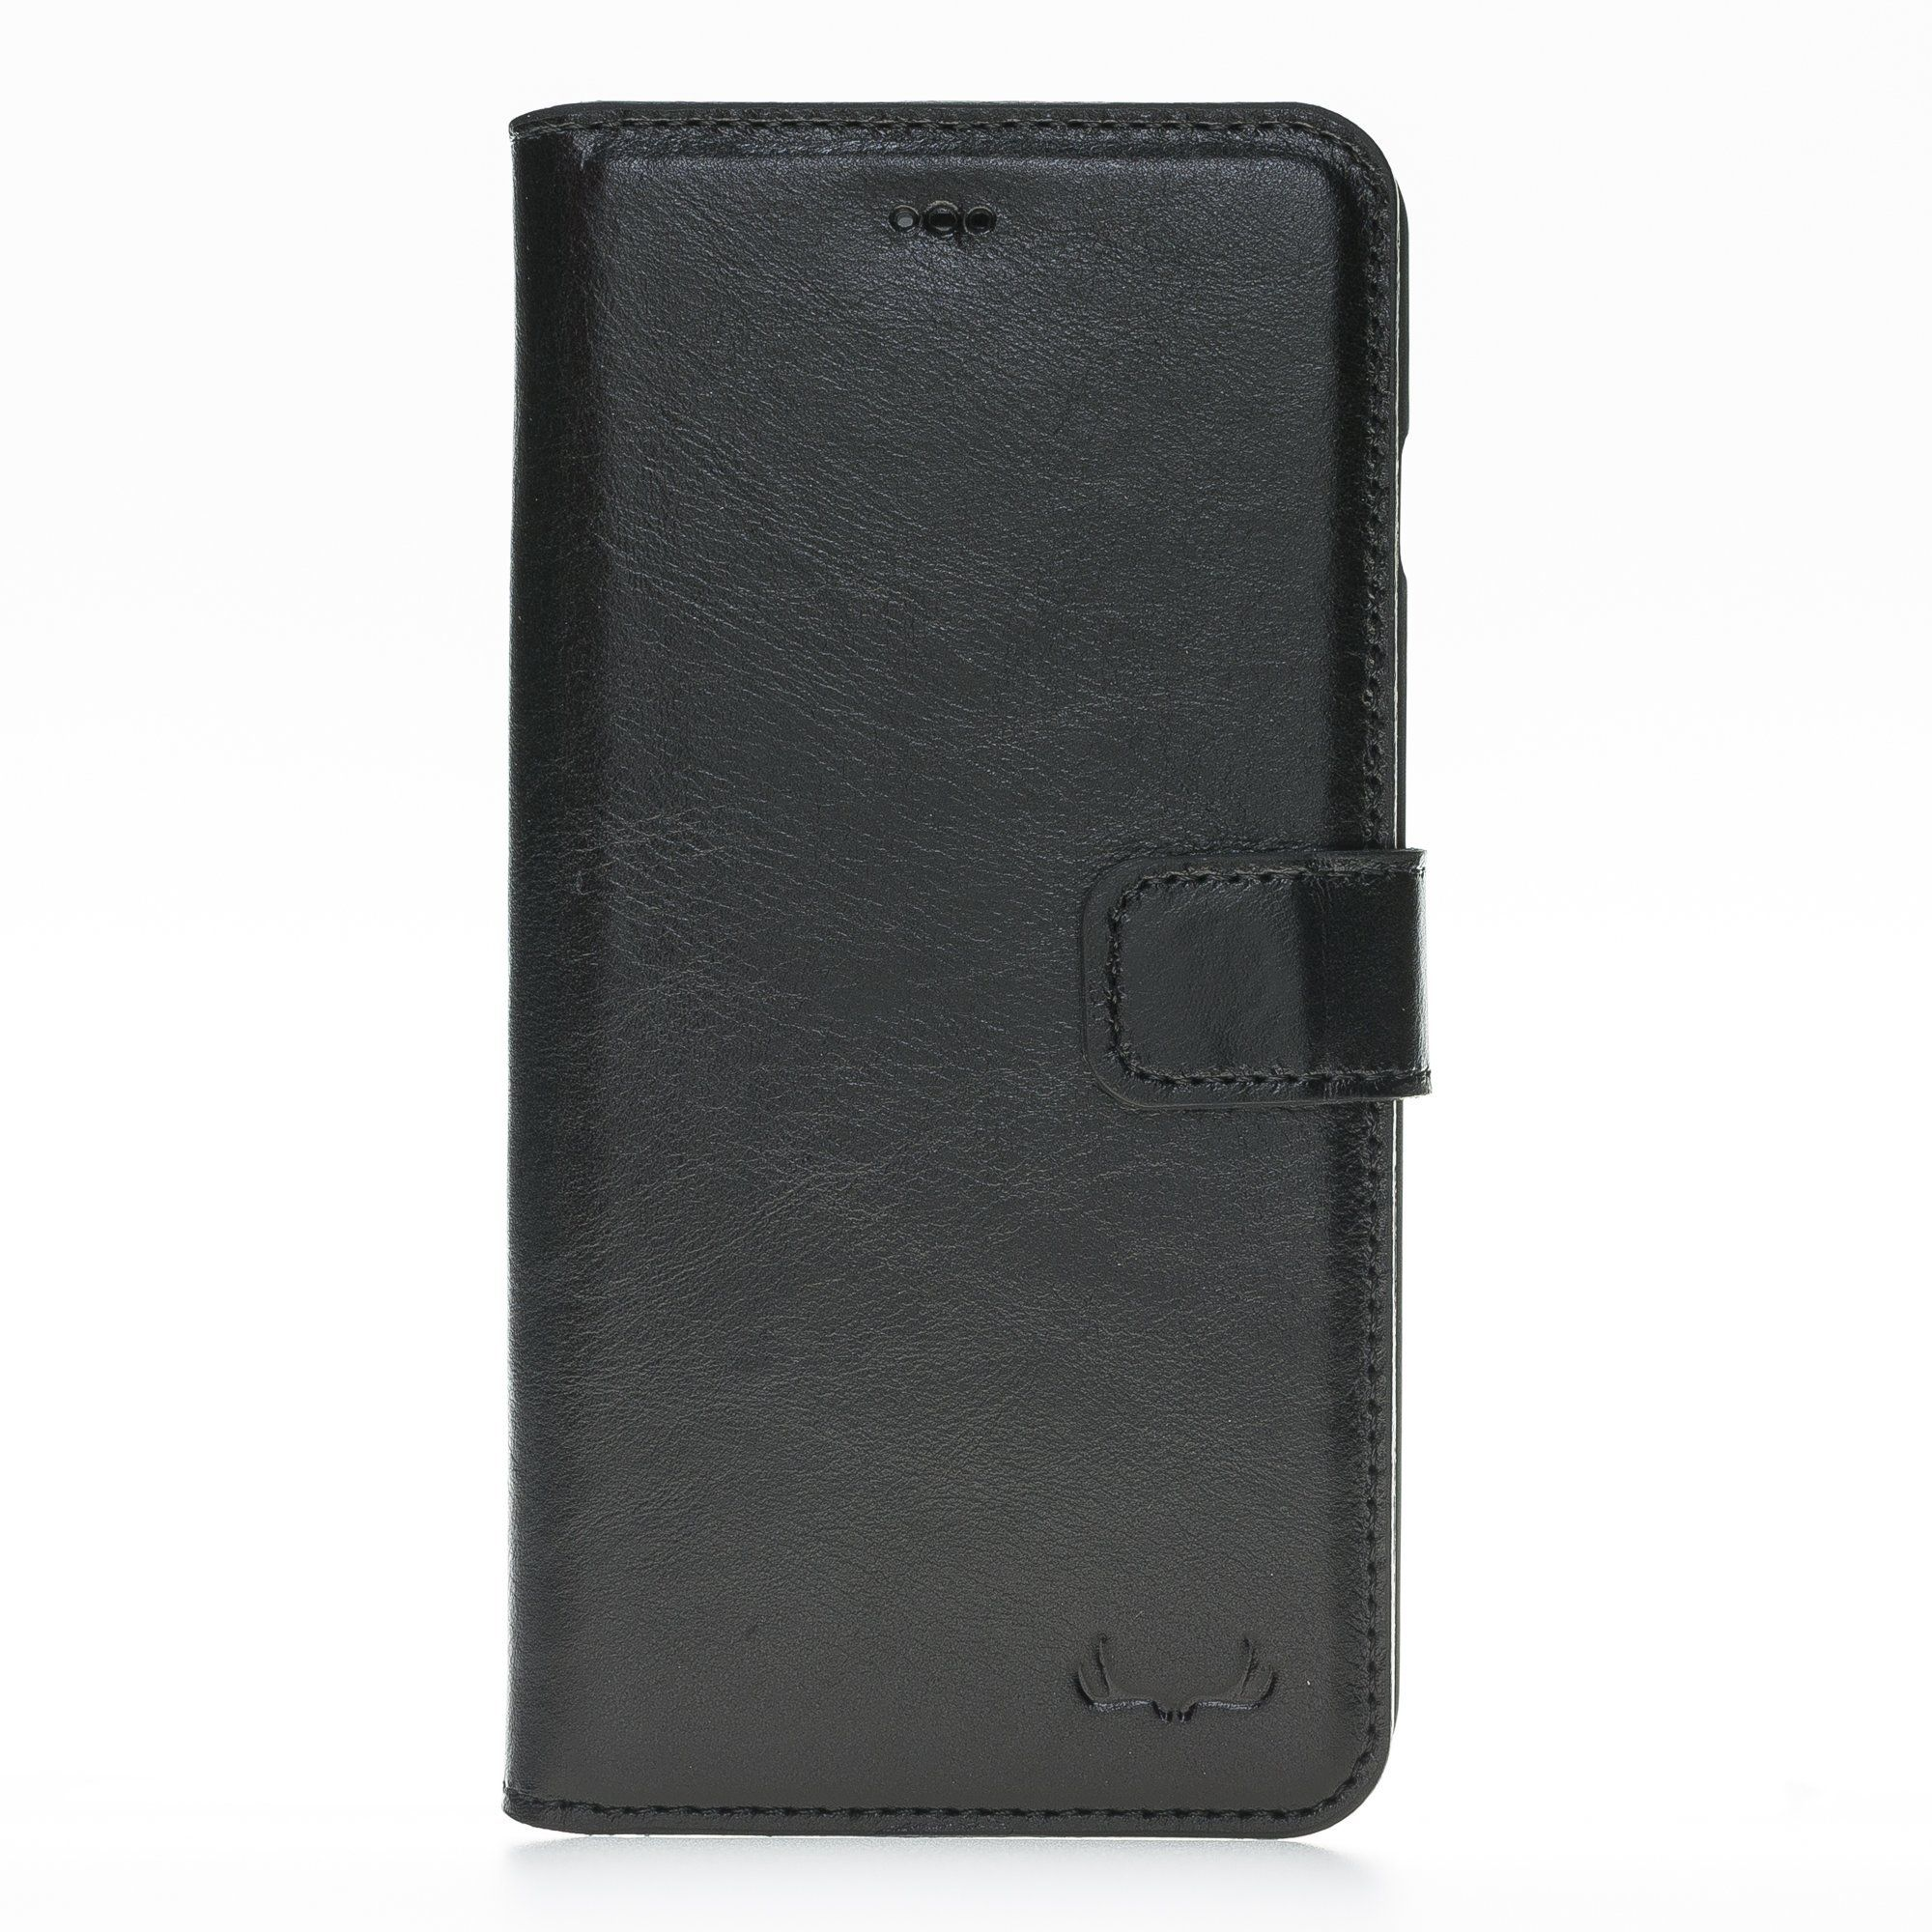 BNT Wallet ID Window for iPhone Xs Max - Black